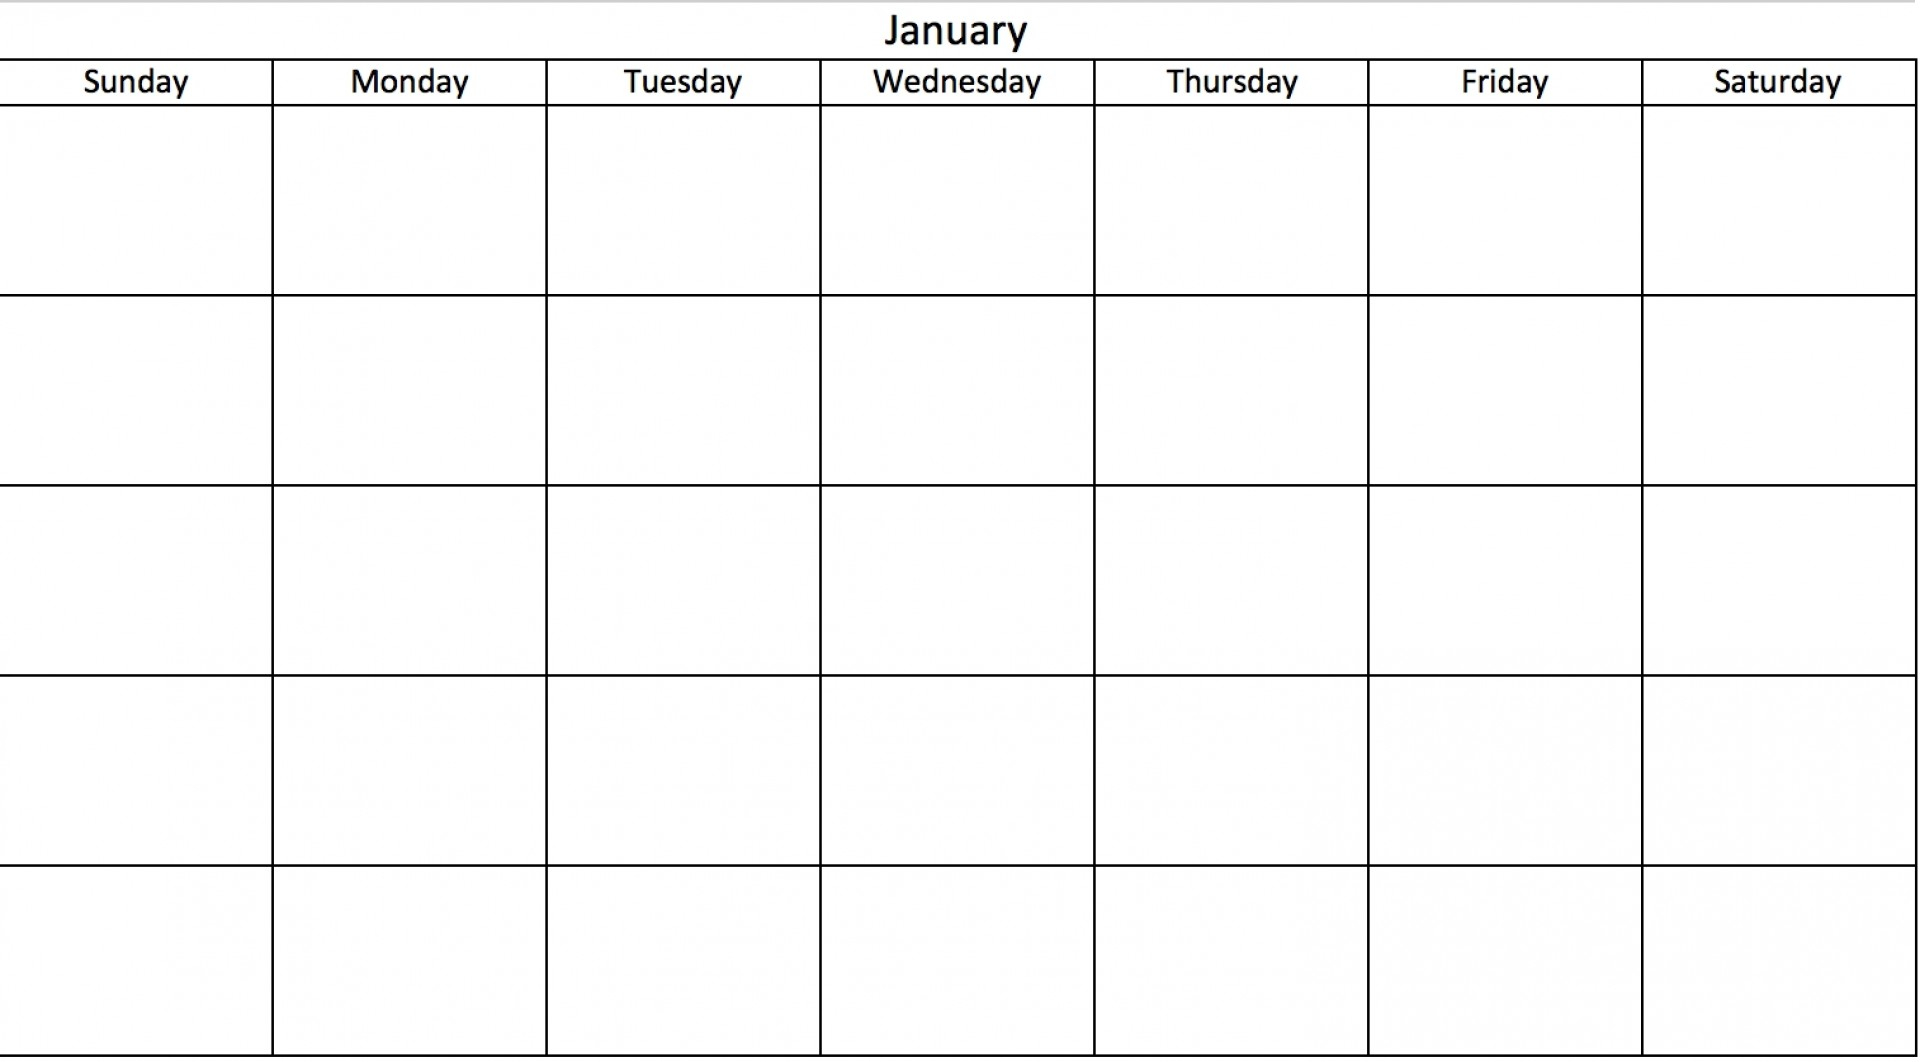 032 Day Calendar Template January Blank Full Weekday Dreaded with regard to Free Printable 30 Day Calendar